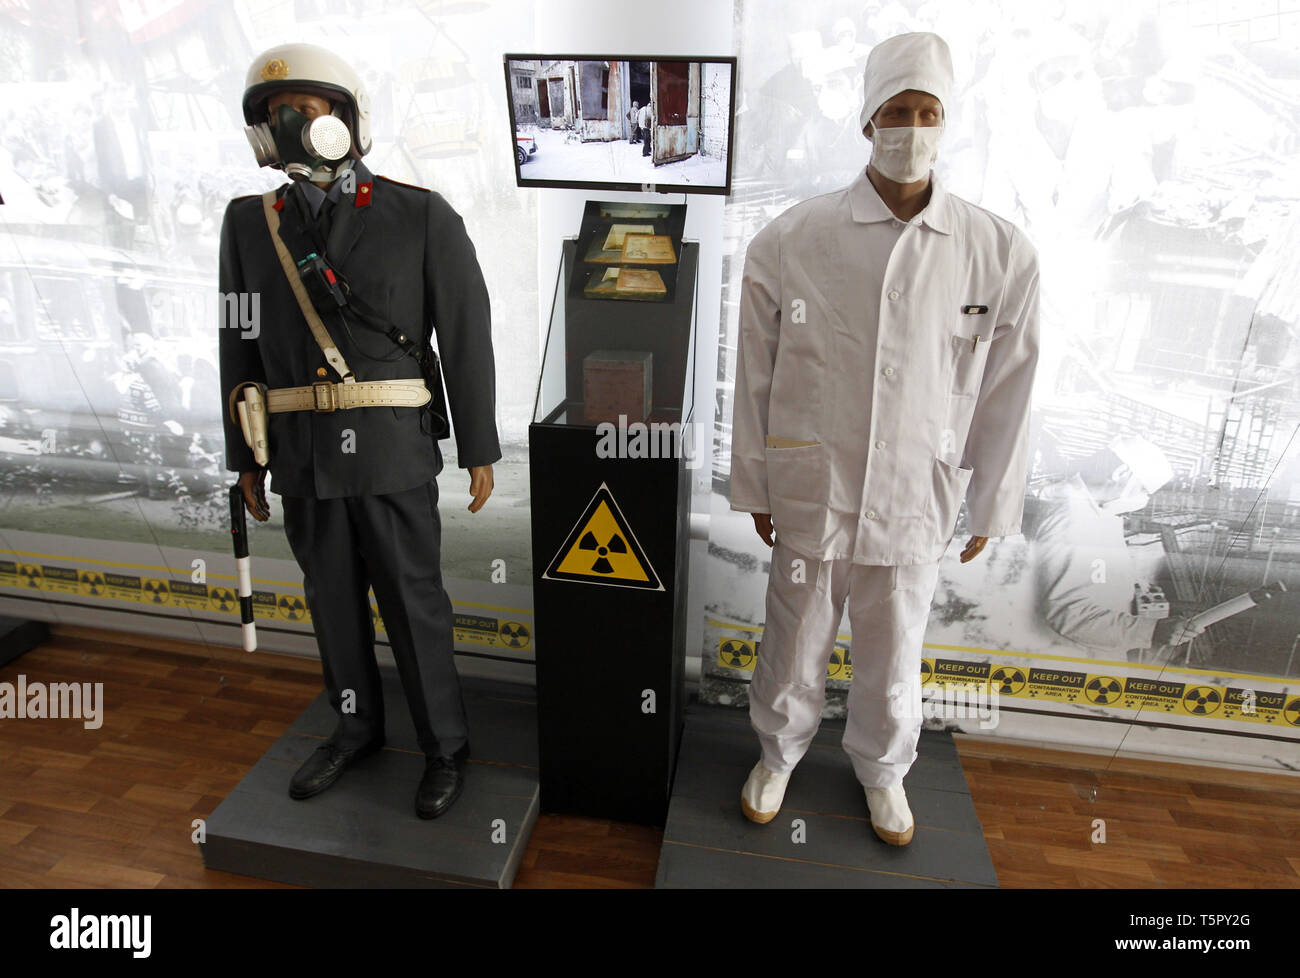 Kiev, Kiev, Ukraine. 26th Apr, 2019. Exhibits are seen at a local museum dedicated to the Chernobyl disaster during the anniversary.Ukrainians mark the 33rd anniversary of Chernobyl catastrophe. The explosion of the fourth block of the Chernobyl nuclear plant on 26 April 1986 is still regarded as the biggest accident in the history of nuclear power generation. Credit: Pavlo Gonchar/SOPA Images/ZUMA Wire/Alamy Live News - Stock Image